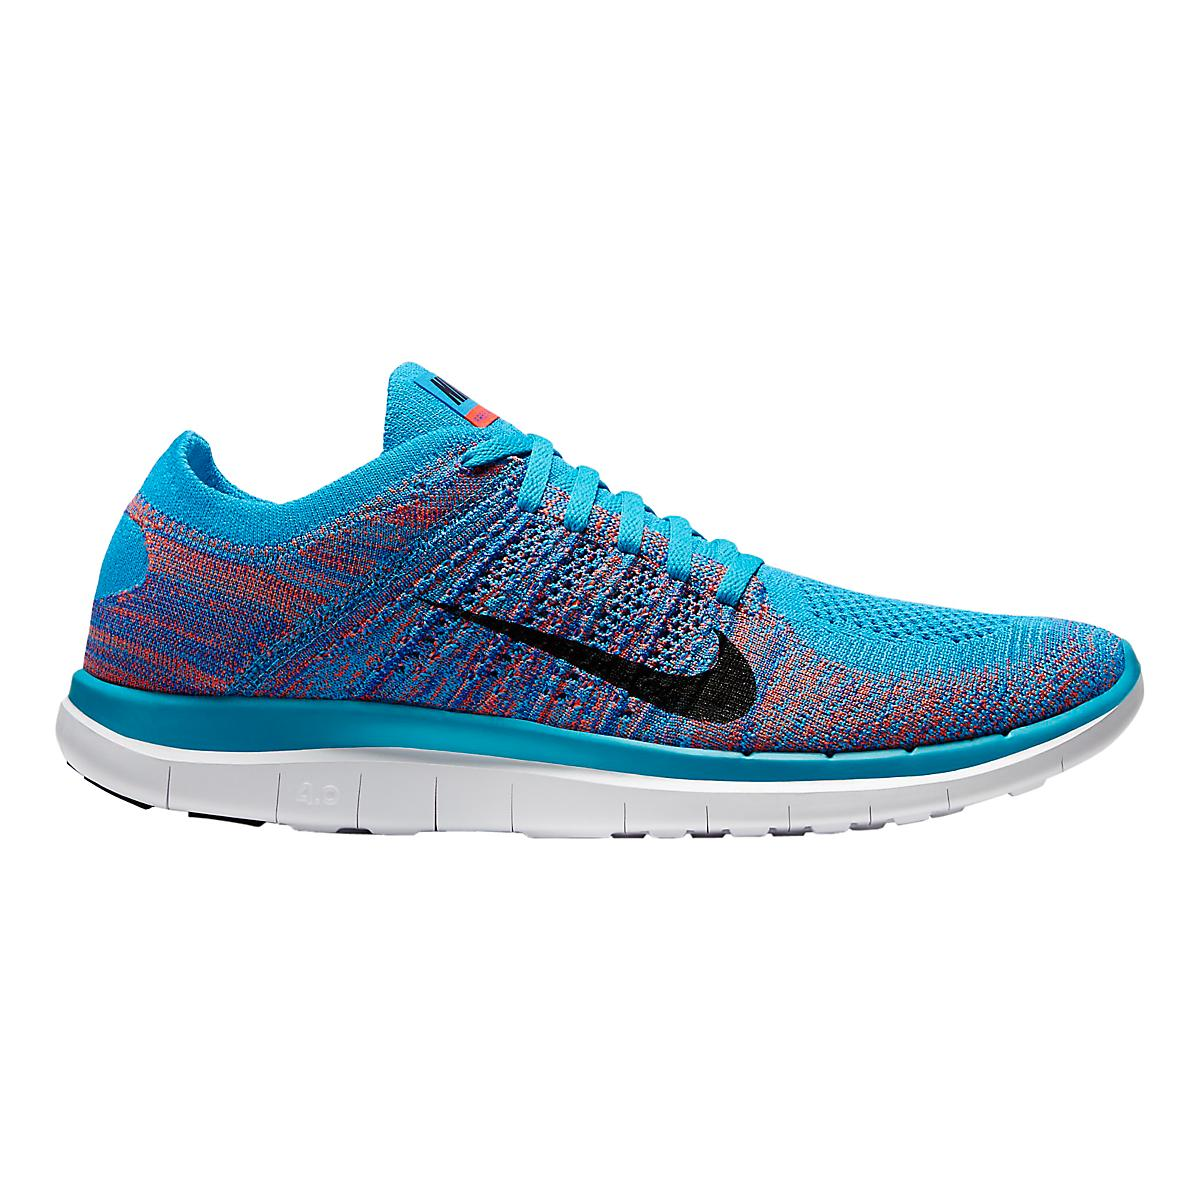 outlet store 54d67 aeeec Mens Nike Free 4.0 Flyknit Running Shoe at Road Runner Sports